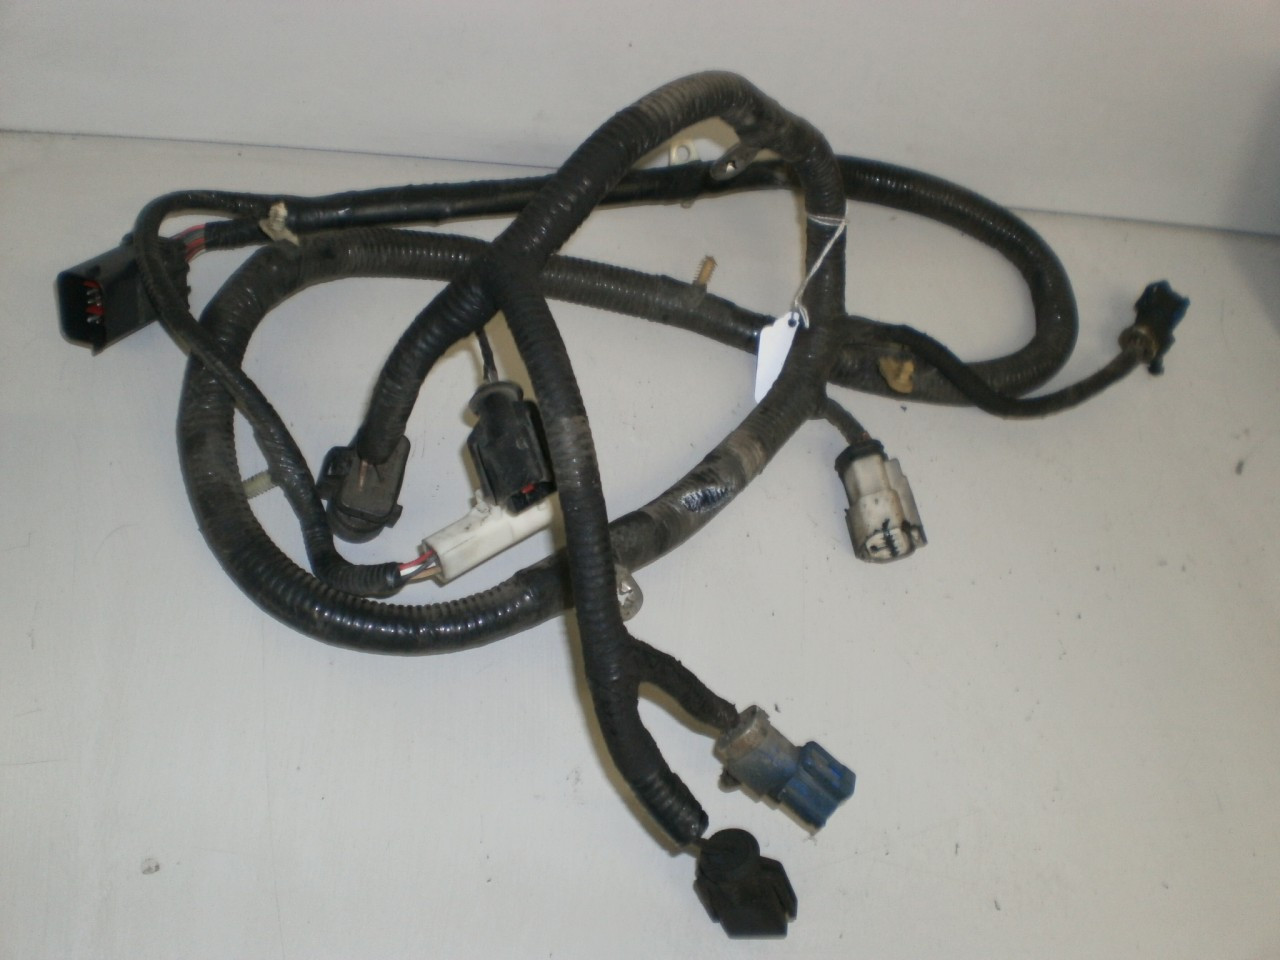 1996-1998 Ford Mustang 3.8 Automatic Transmission Wire Harness Lx on 2002 ford mustang battery harness, 2003 7 3 motor wiring harness, 1994 explorer wiring harness, estereo pioneer wiring harness, 2001 ford ranger wiring harness, 5 4 injector wiring harness,